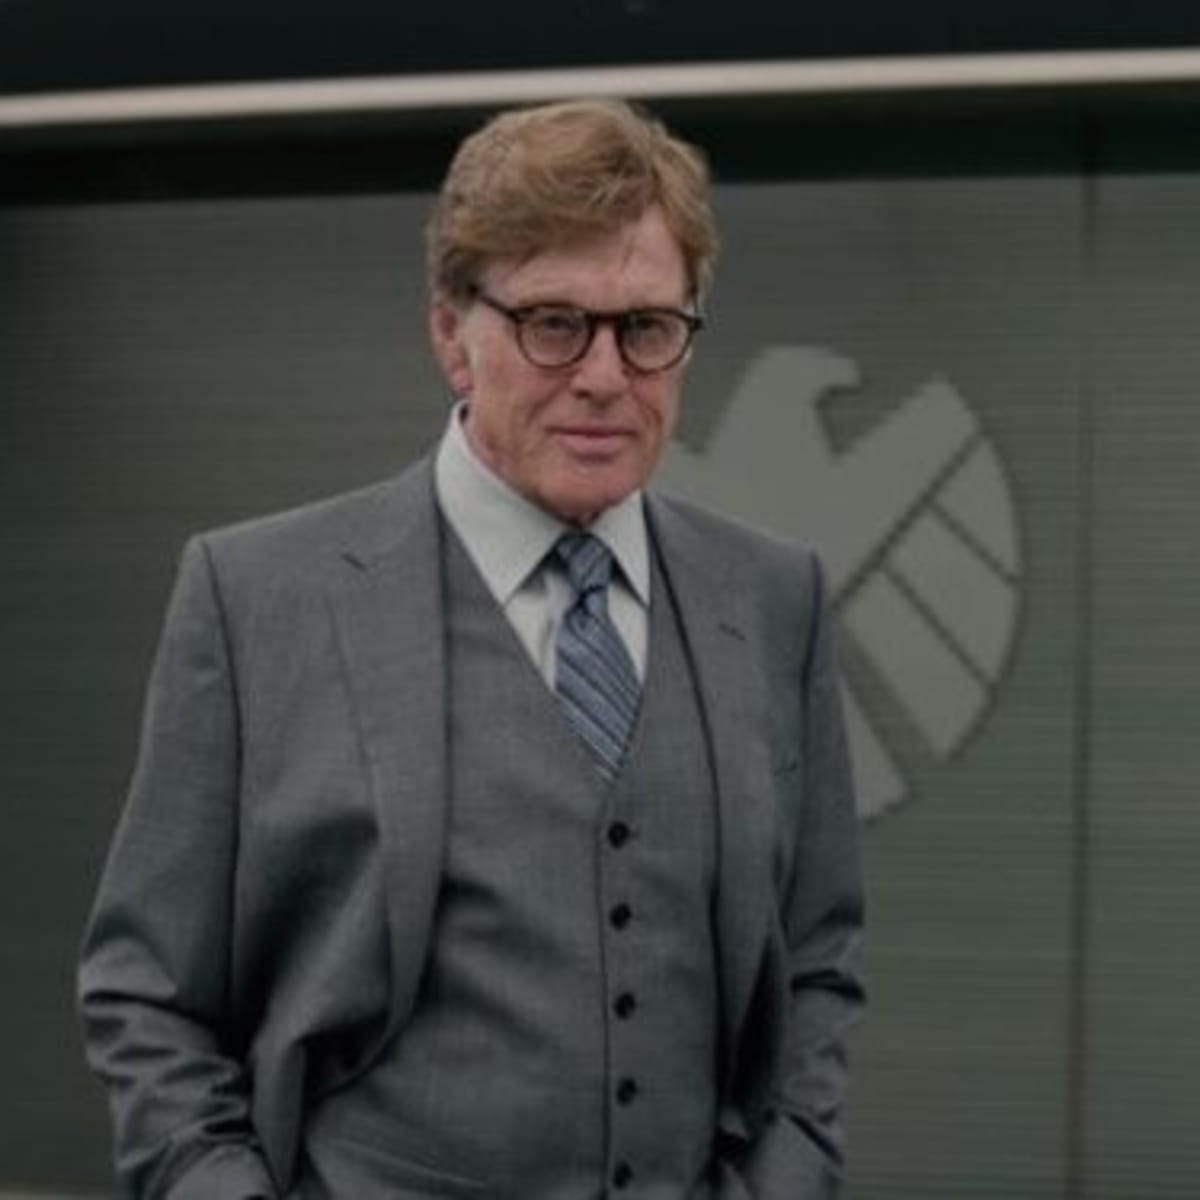 Robert Redford in The Discovery